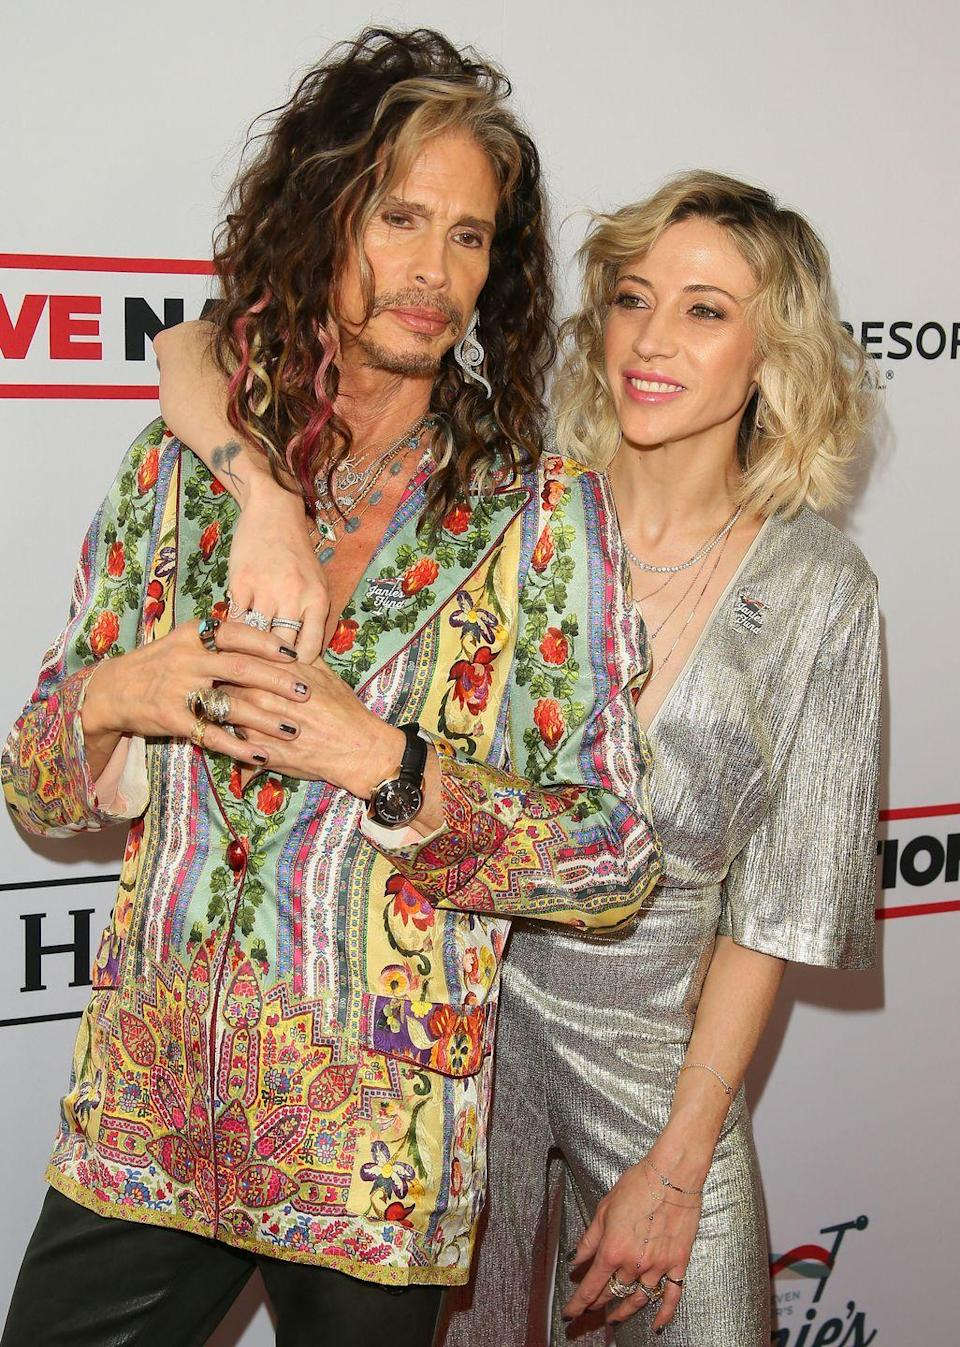 <p><strong>Age gap:</strong> 39 years</p><p>Steven, 71, and Aimee, 30, are happily engaged. Aimee started as the Aerosmith rocker's personal assistant, but the pair finally went public with their romantic relationship in 2016. Fun fact: She also used to work for Victoria Beckham <em>and</em> the Trump family. </p>